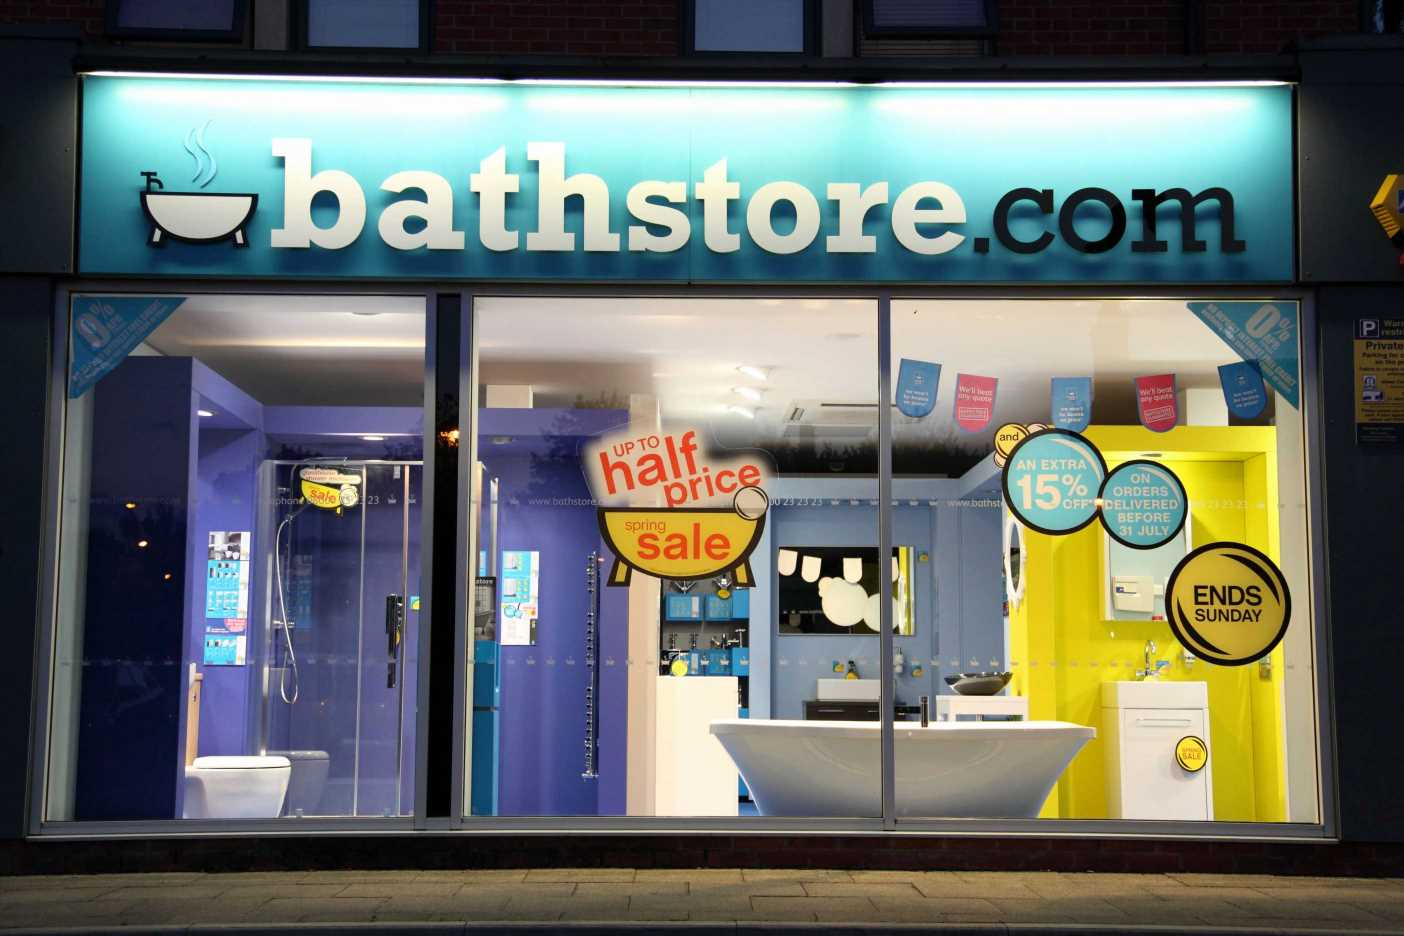 Bathstore refund and installation rights as the chain sinks into administration